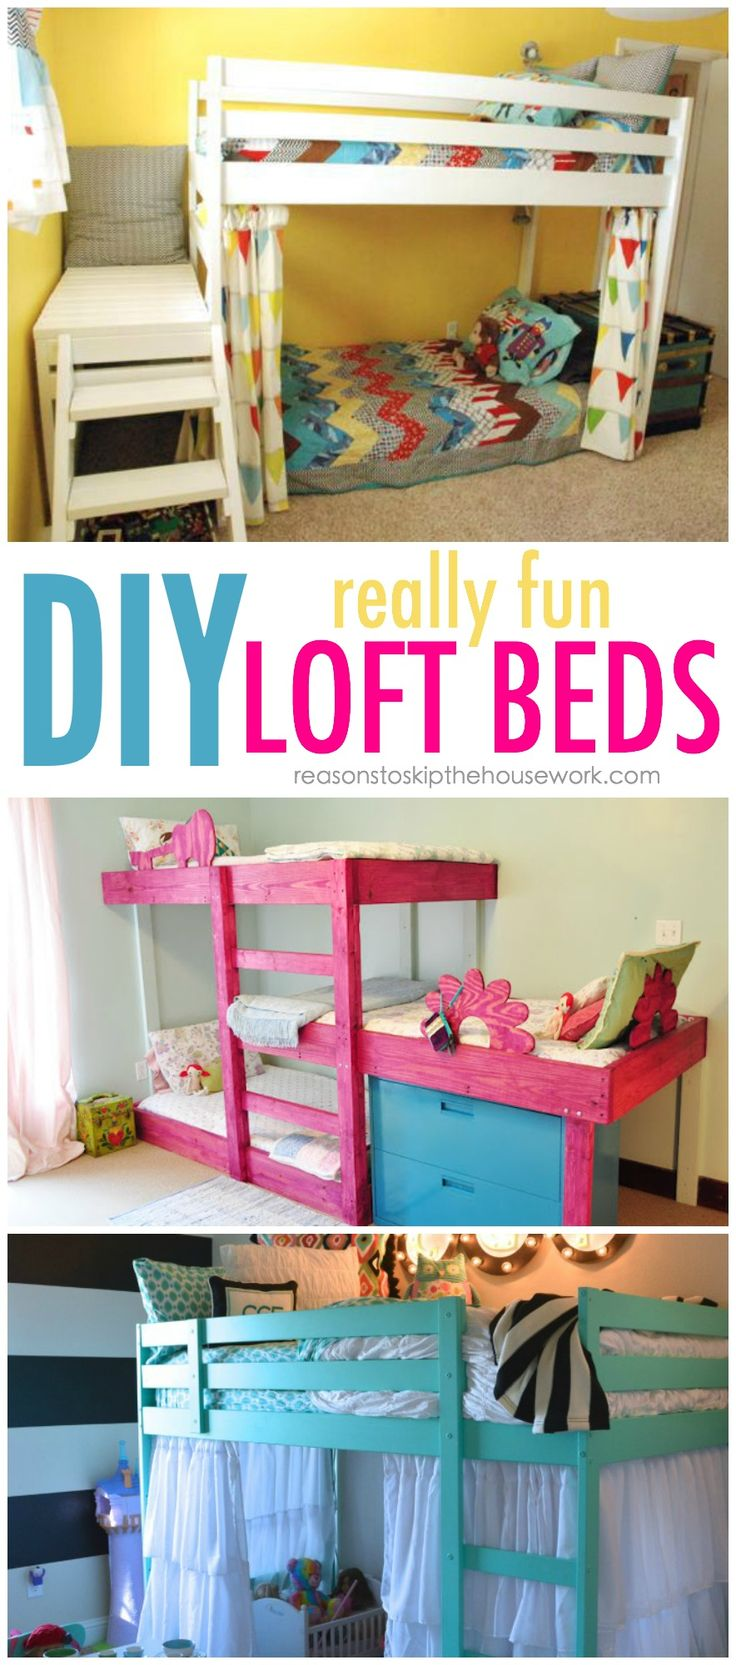 Bunk bed with stairs and desk plans - Diy Bunk Beds Tutorials And Plans